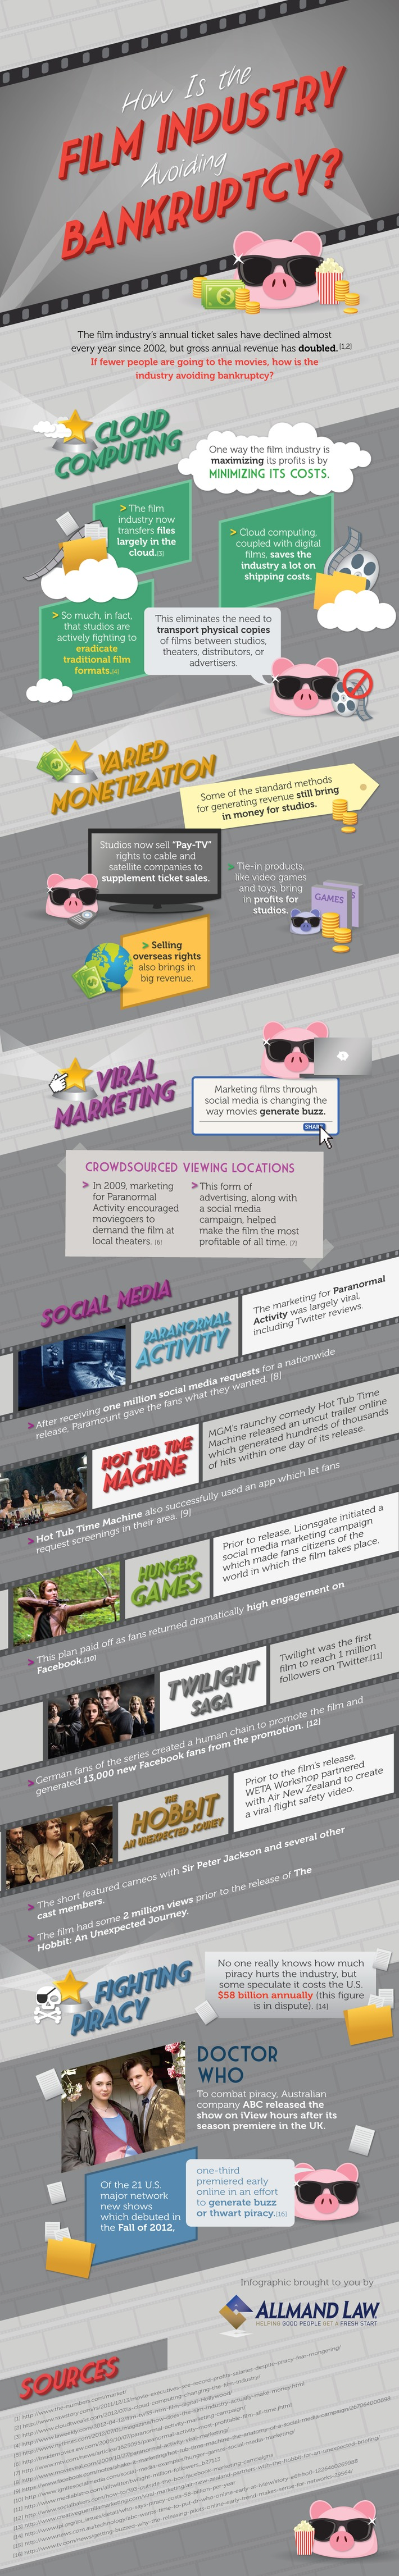 How Social Media and Viral Marketing are Saving the Film Industry [INFOGRAPHIC] | 255 Automation | Scoop.it